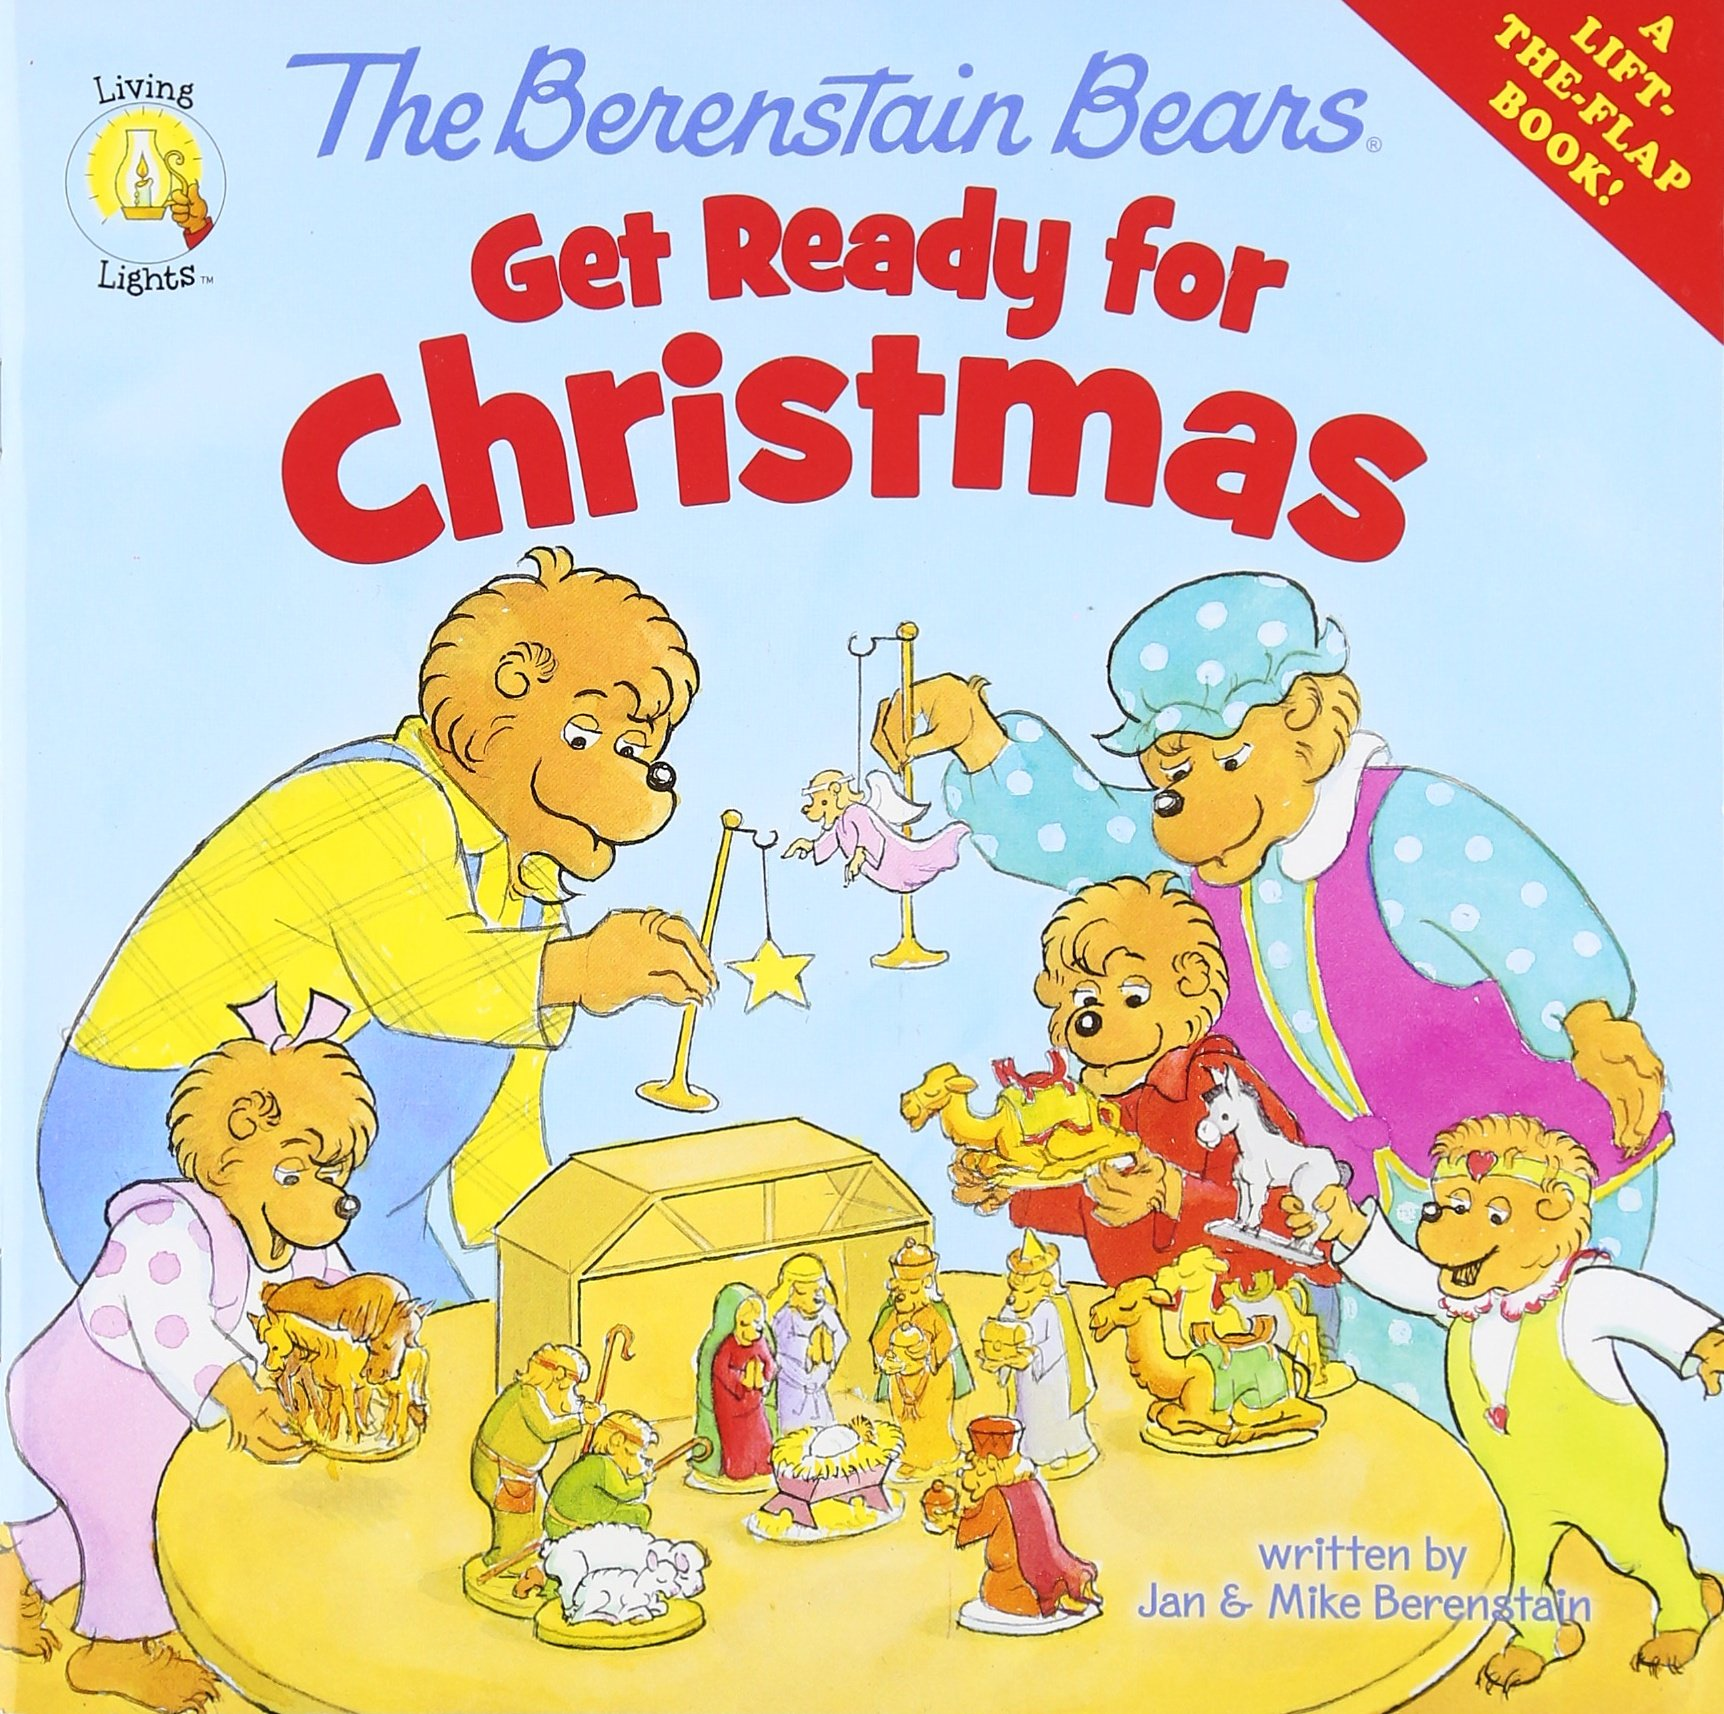 Download The Berenstain Bears Get Ready for Christmas: A Lift-the-Flap Book (Berenstain Bears/Living Lights) PDF